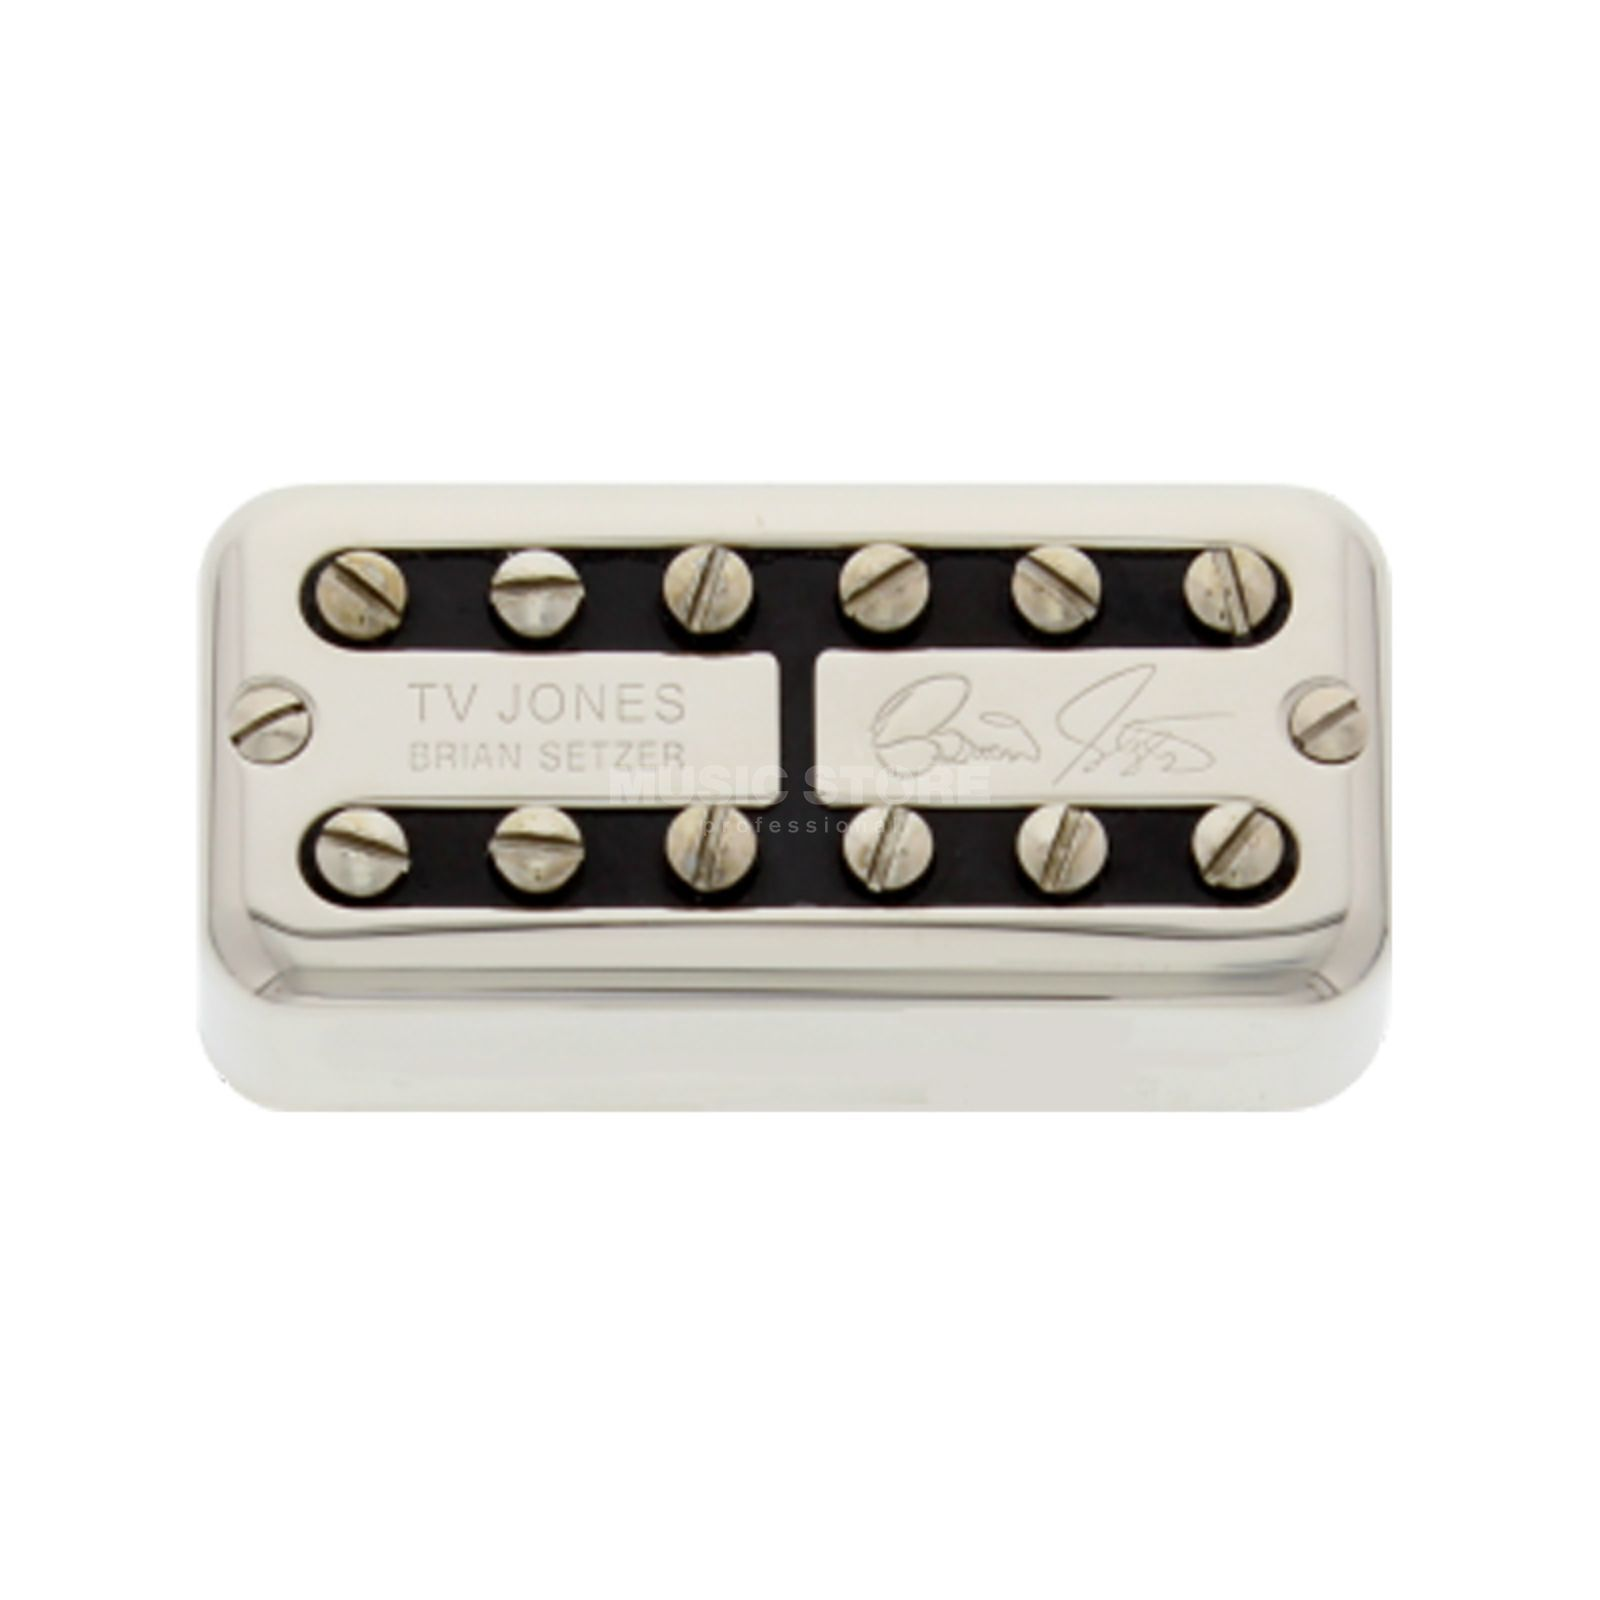 TV Jones Brian Setzer Signature Bridge Nickel Product Image